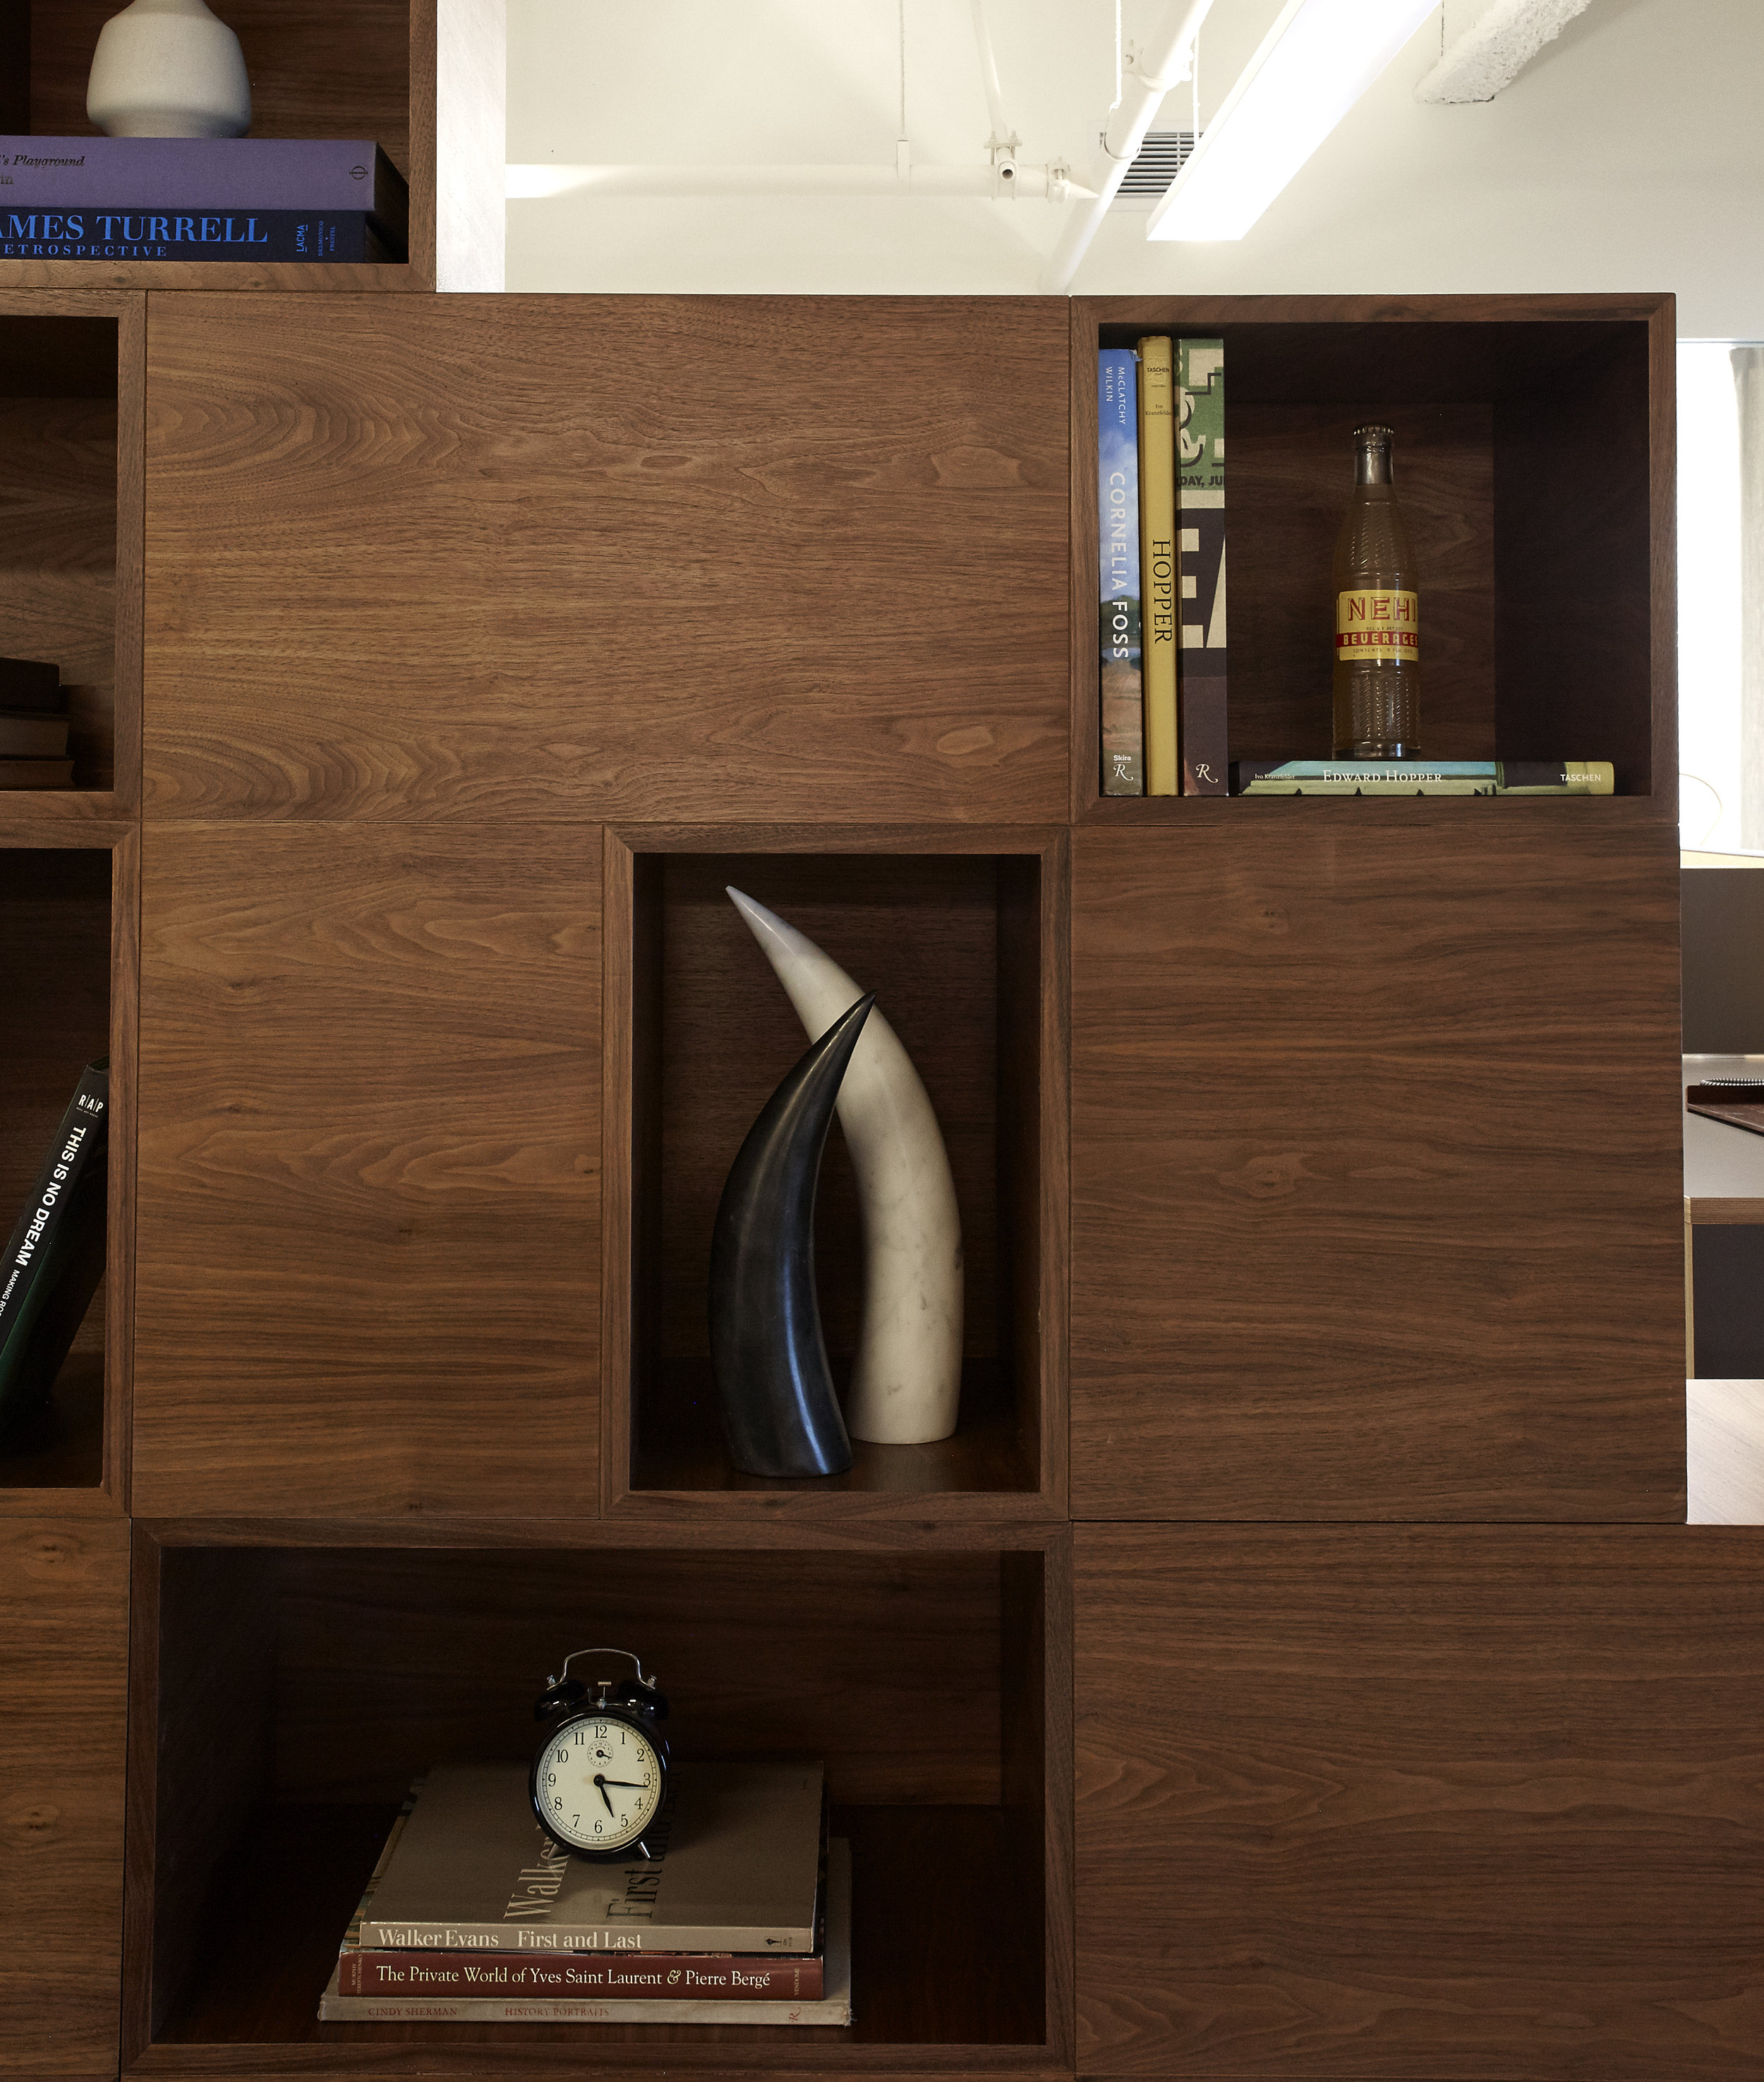 - Because the company derives most of their content from literary sources, we designed a bookshelf-divider and filled the reception side with vignettes that nod to the founder's favorite films, and the core cinematic elements of drama and timing.